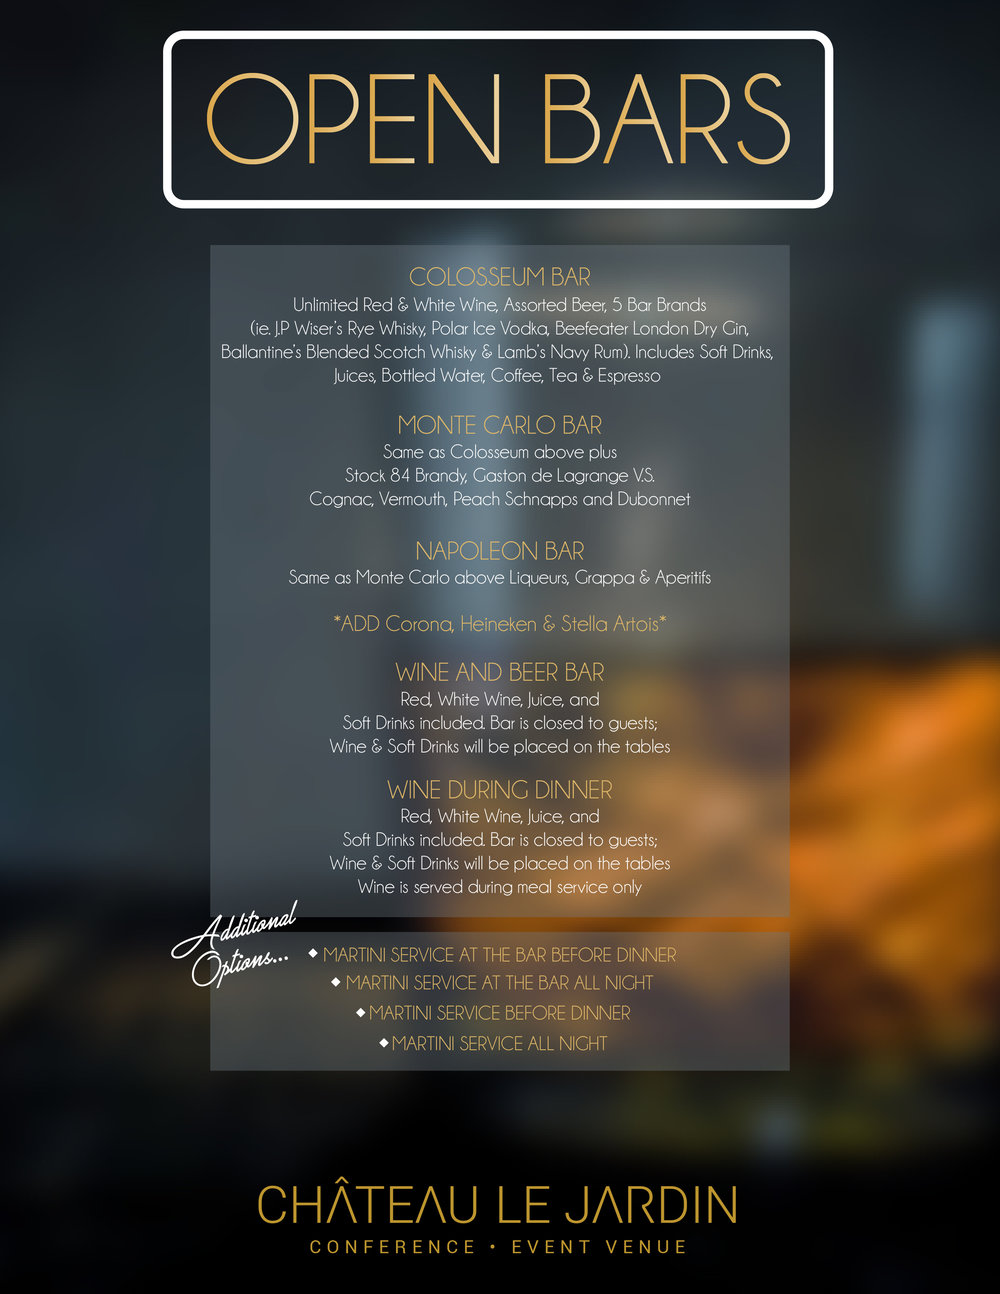 Chateau Le Jardin Graphic Design: Open Bar Menu